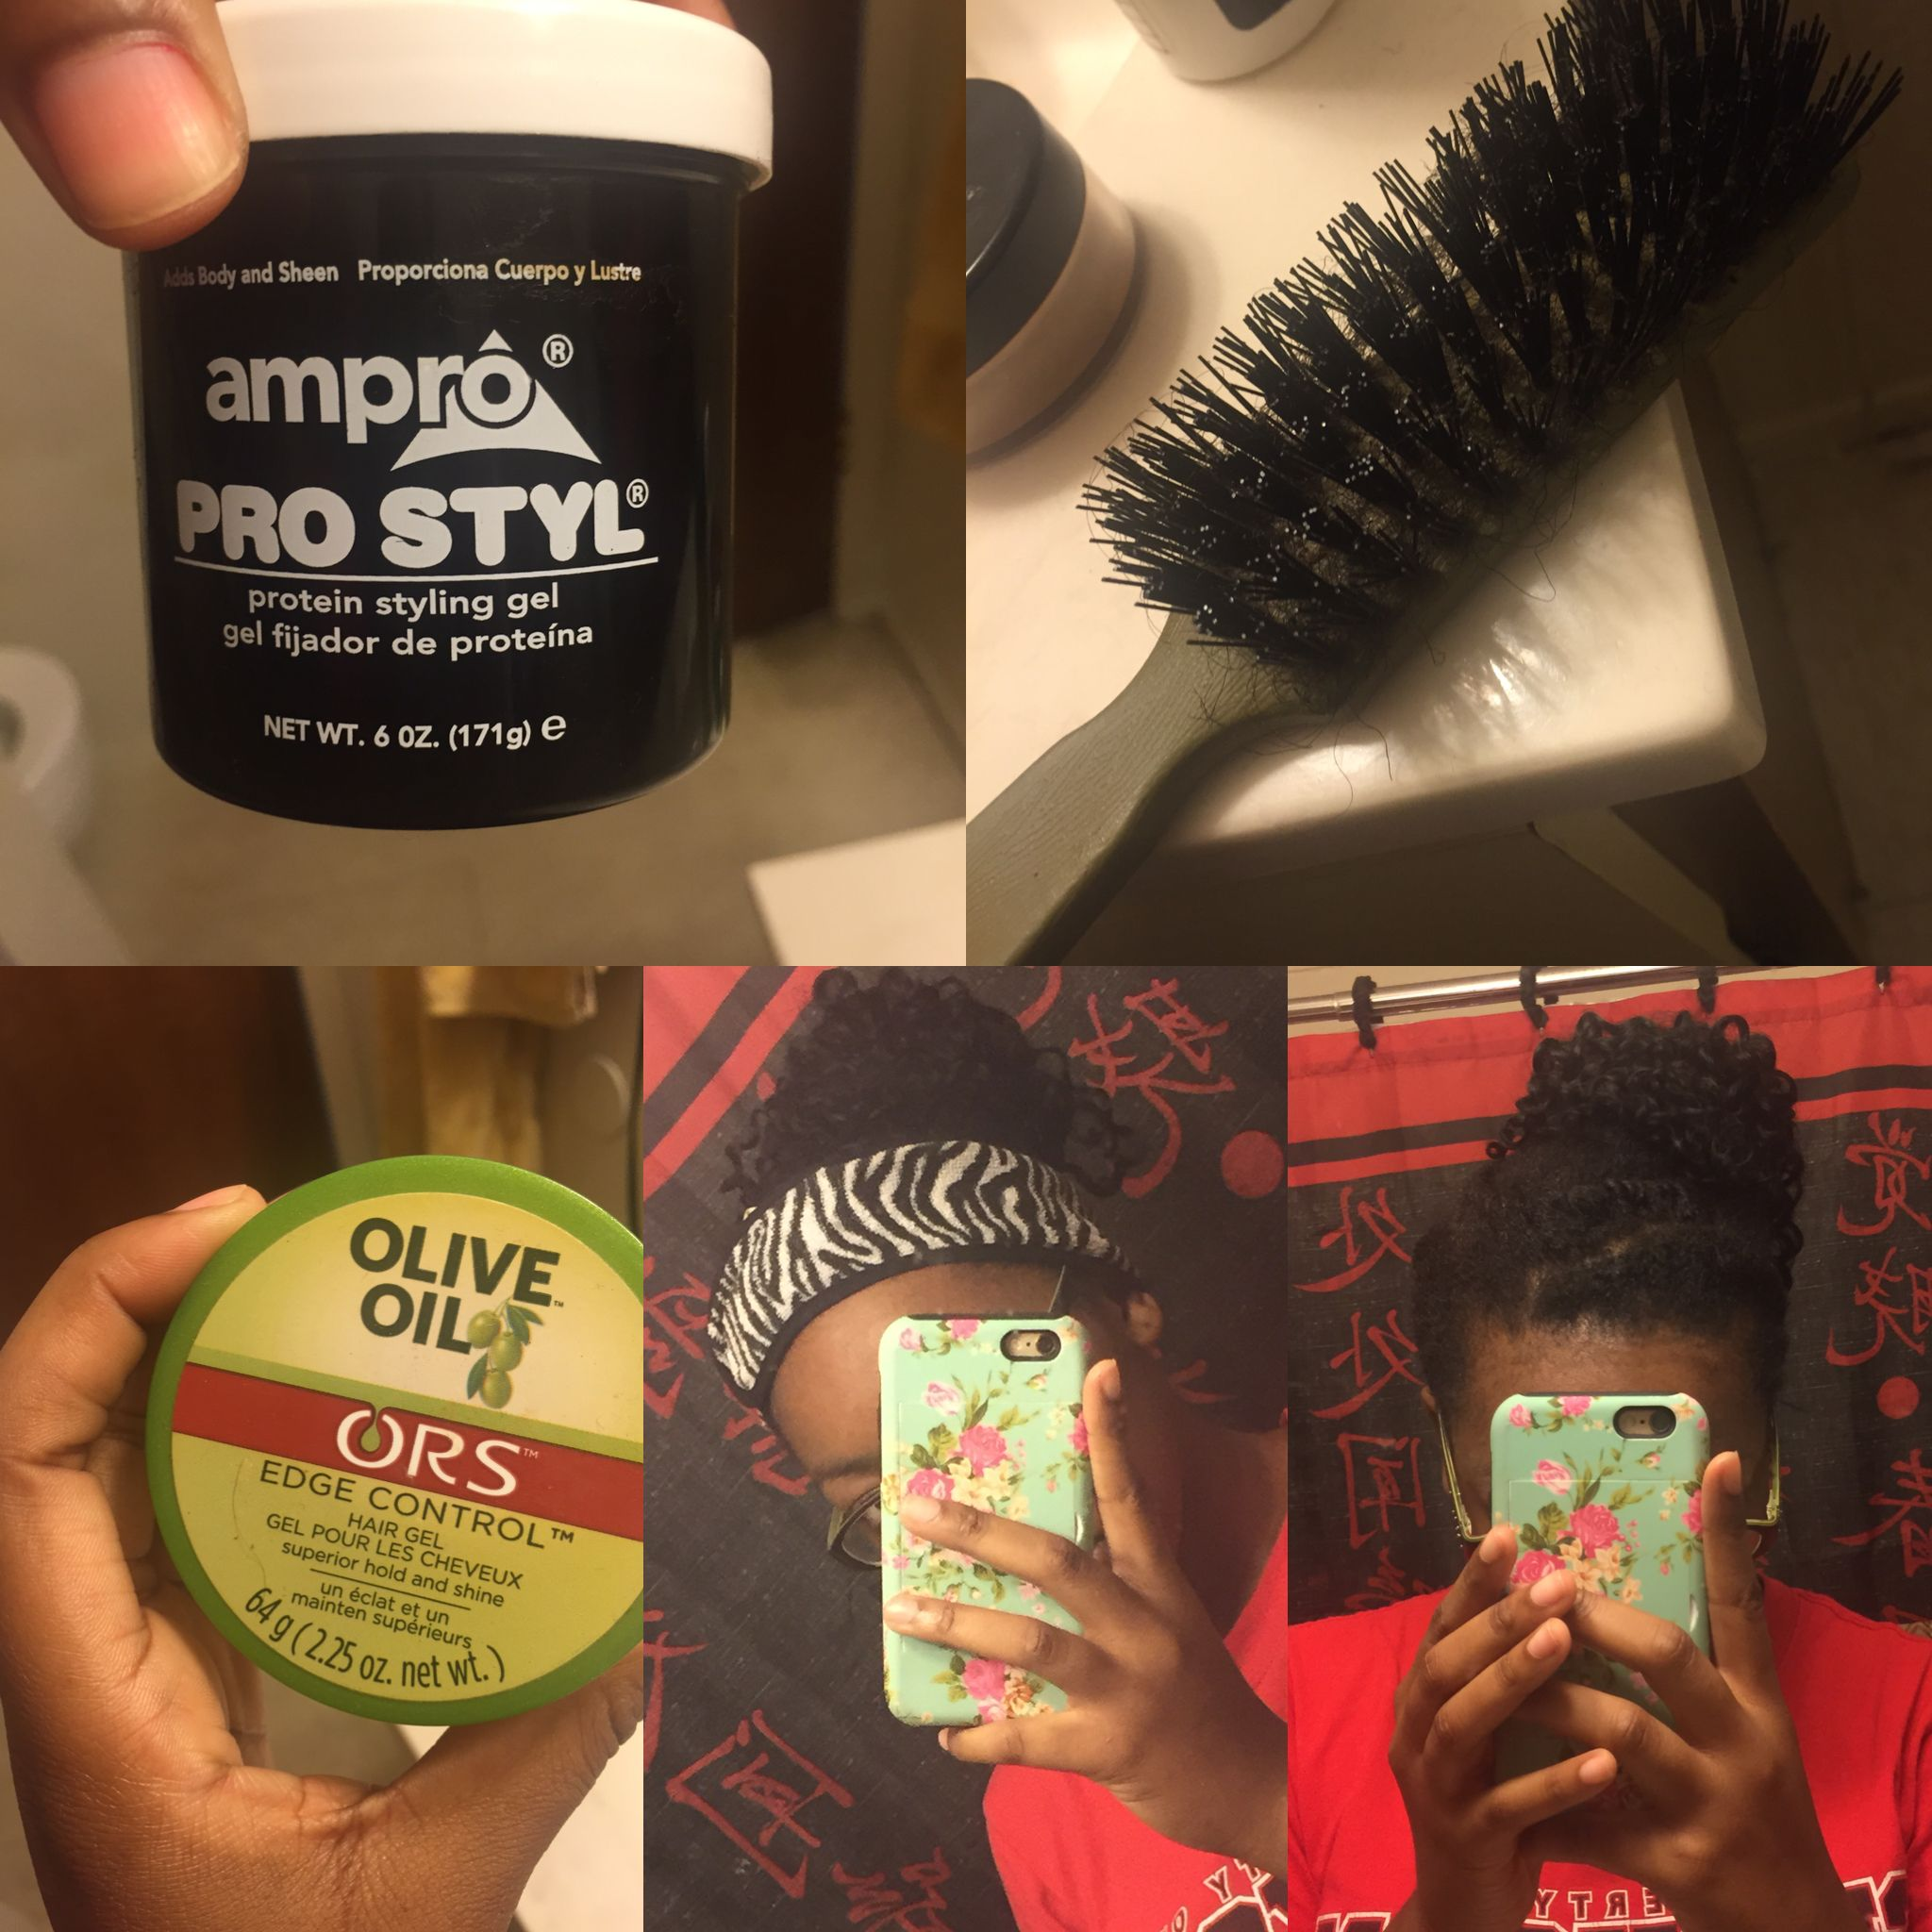 How To Tame Your Unmanageable Edges 1 Gel Them 2 Brush Brush 3 Use Edge Control 4 Brush Brush 5 W Edge Control Protein Styling Gel Transitioning Hairstyles